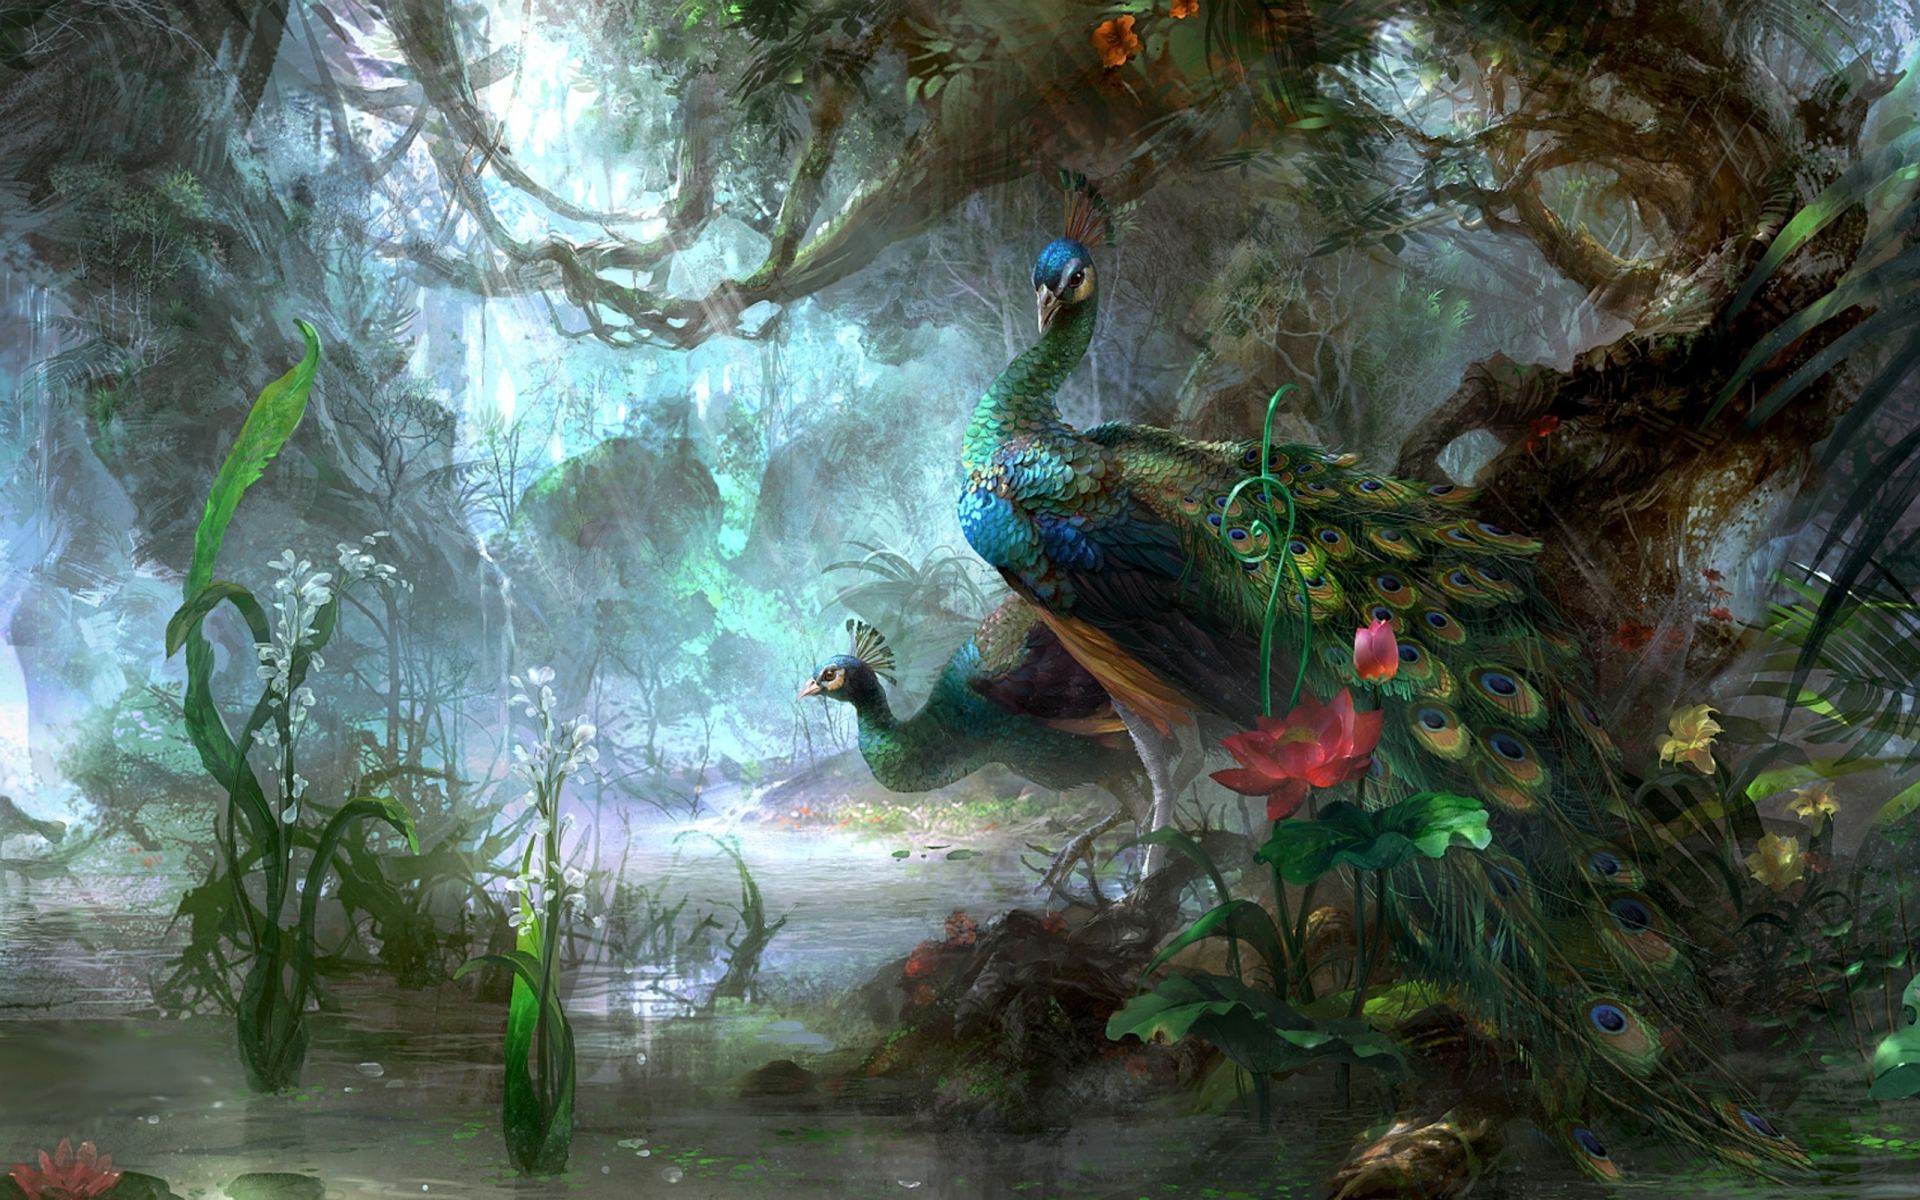 ... animals magical peacock jungle lake pond water moss flowers wallpaper